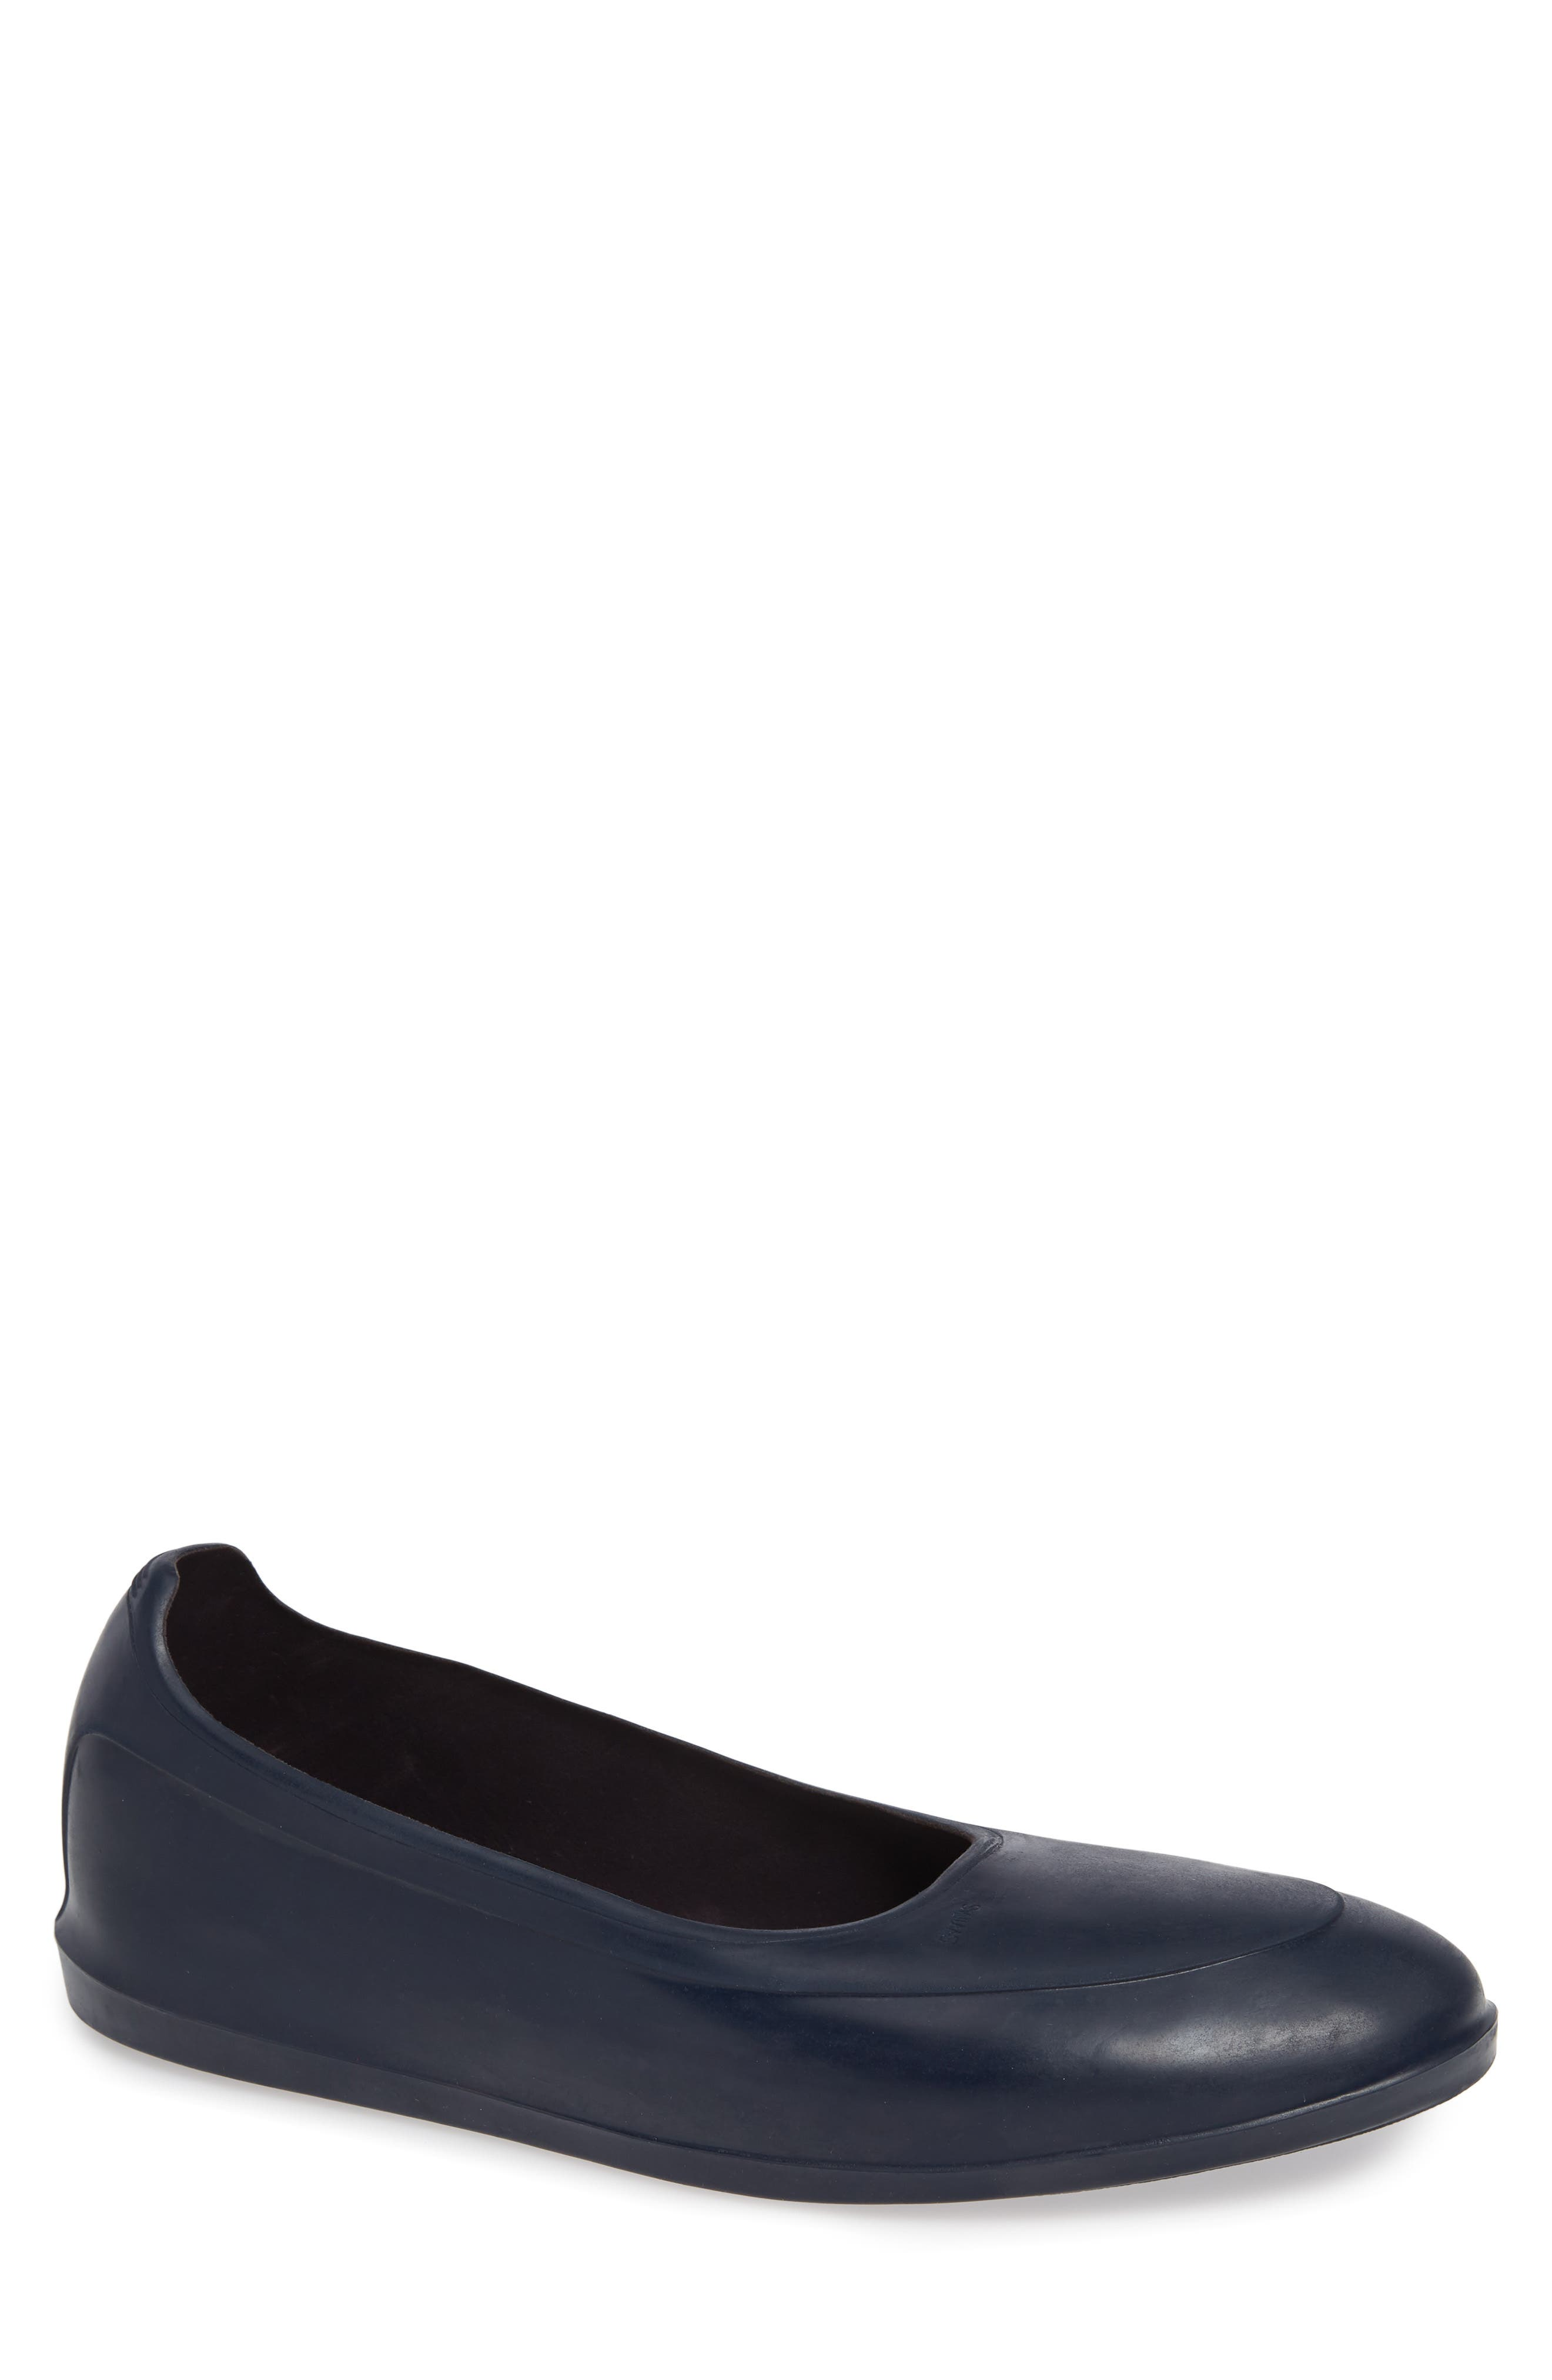 SWIMS Men'S Classic Rubber Galoshes in Navy